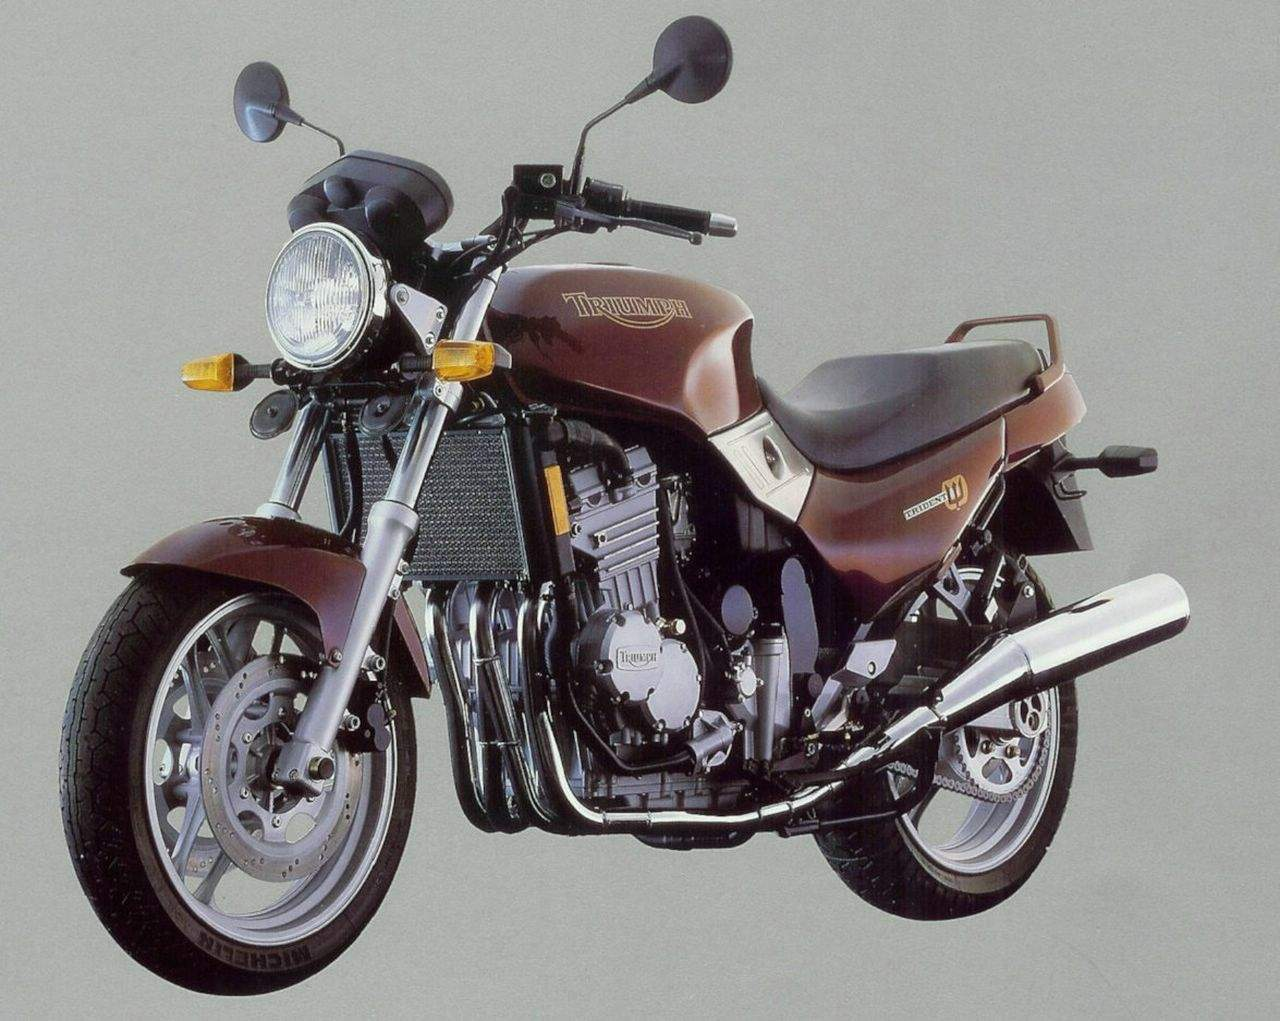 Triumph Trident 750 1993 wallpapers #129841